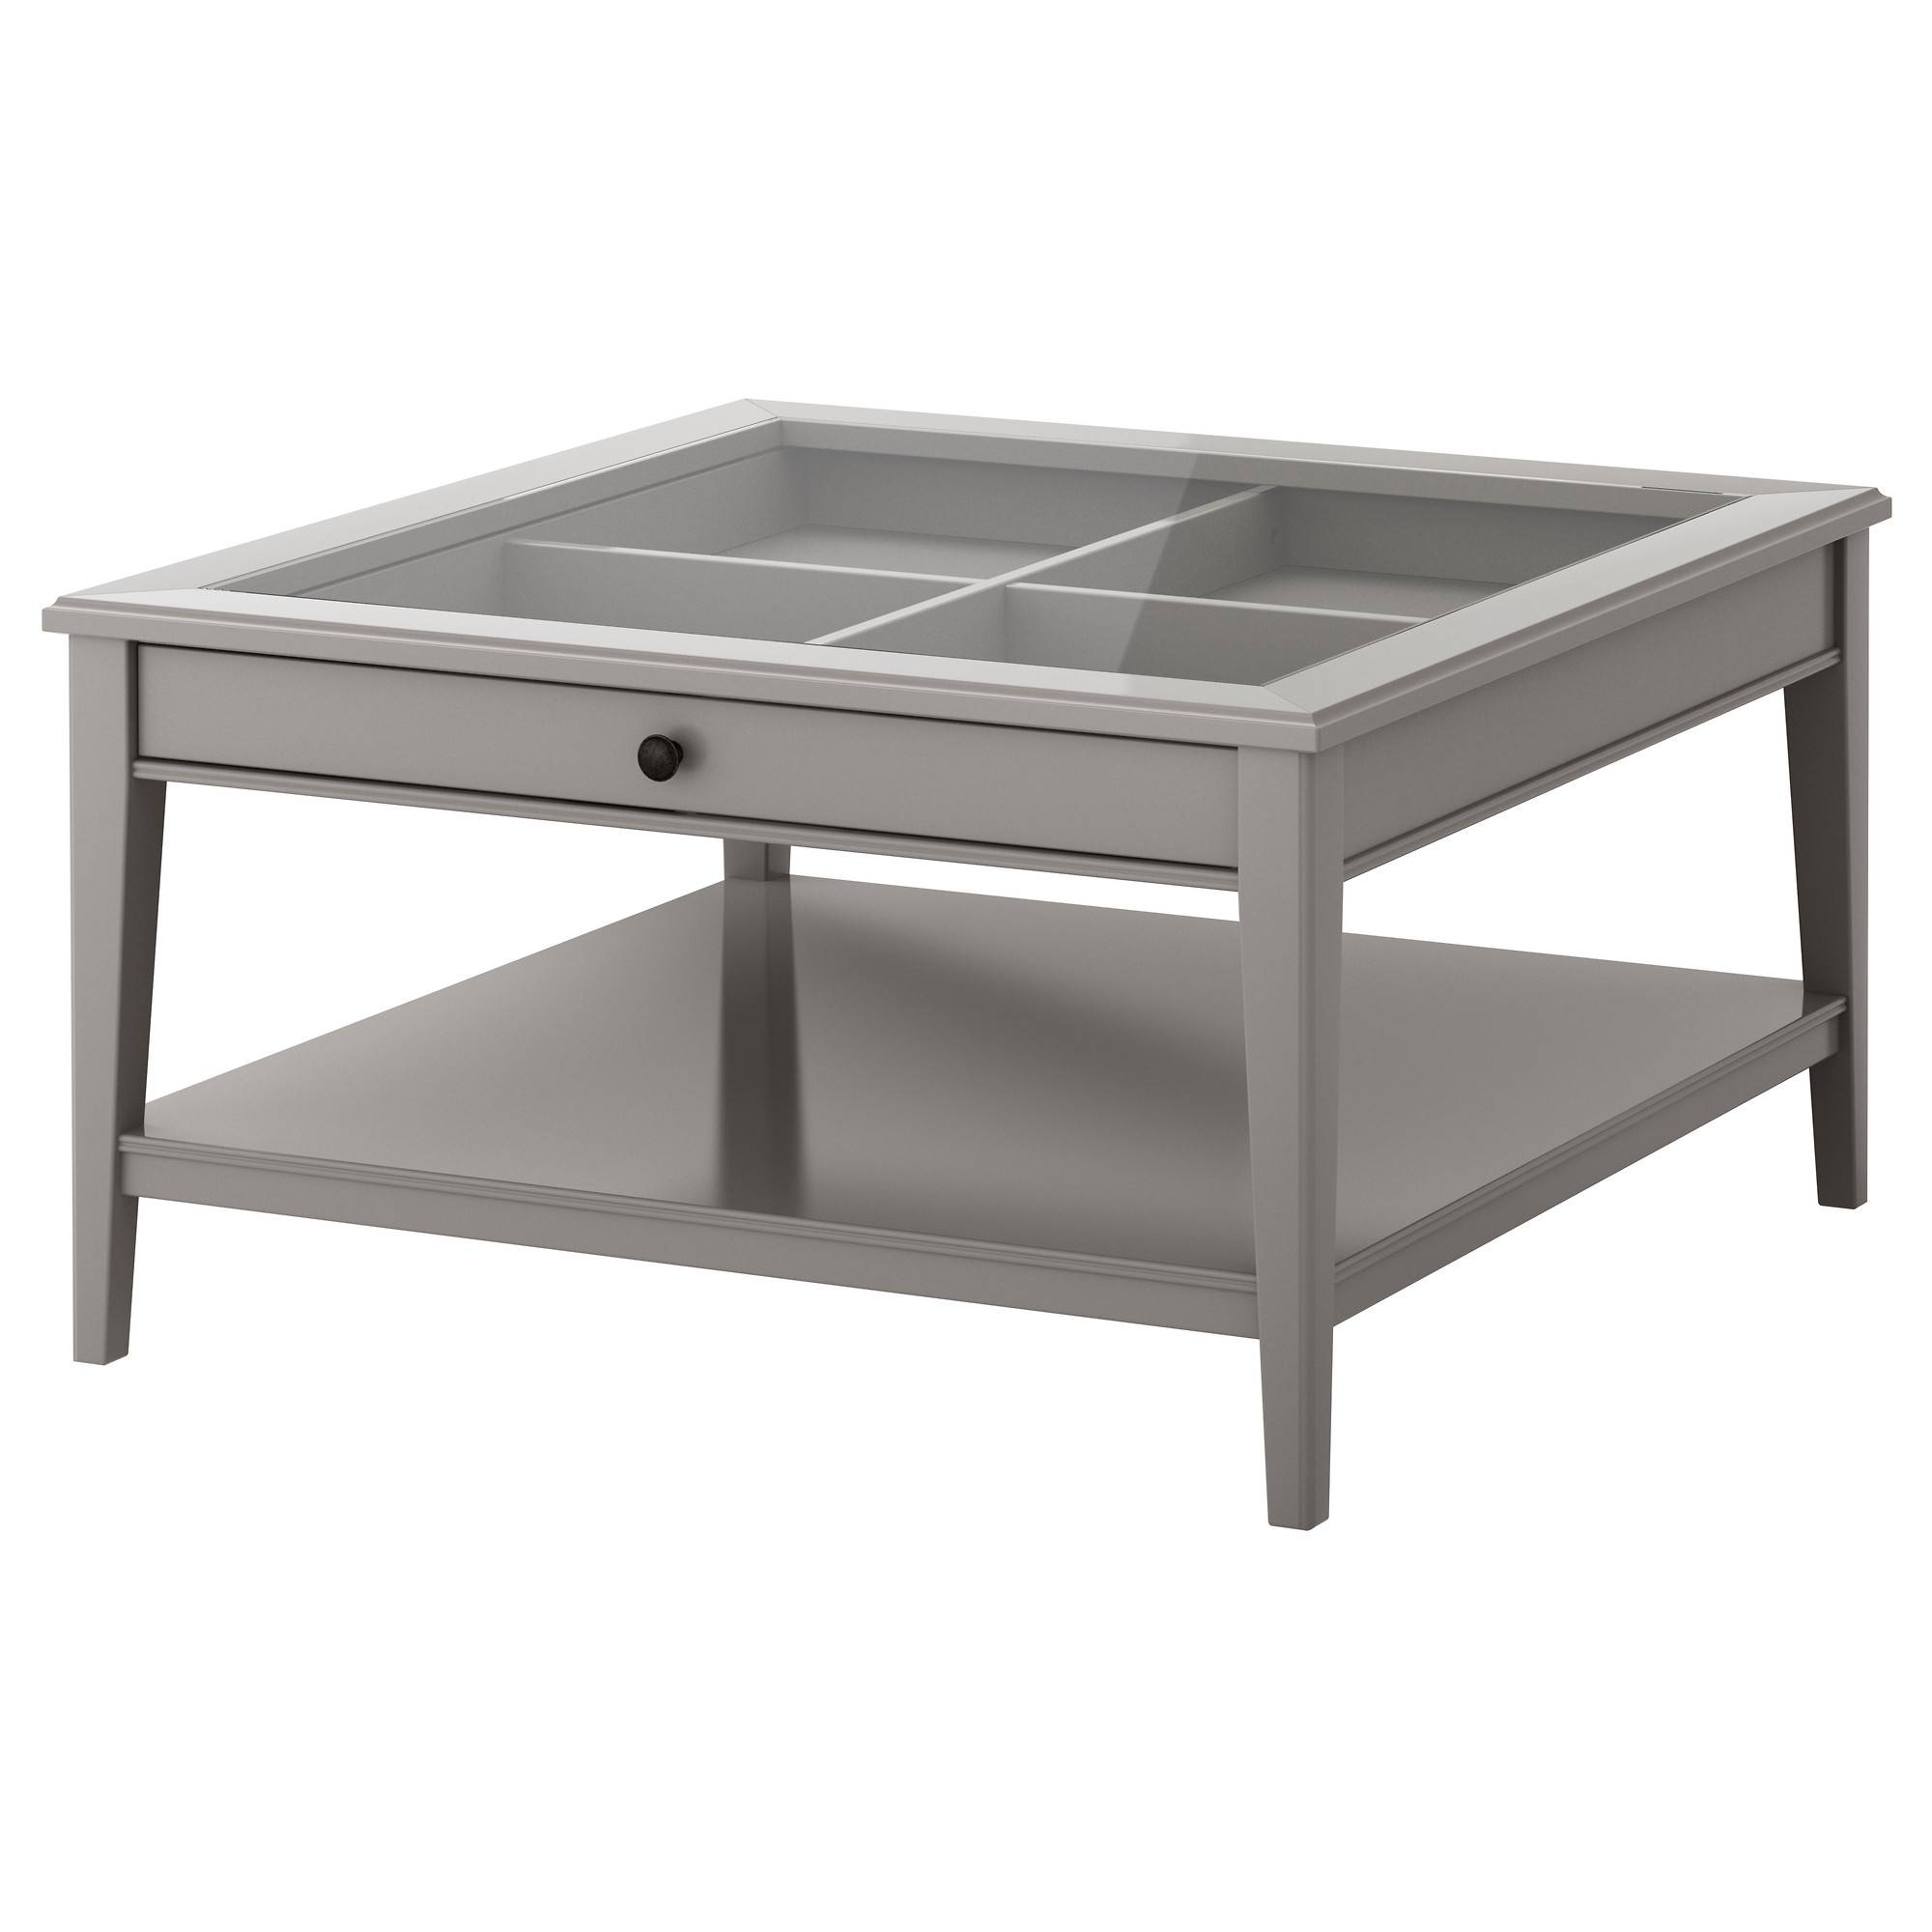 Liatorp Coffee Table - White/glass - Ikea inside White and Glass Coffee Tables (Image 17 of 30)